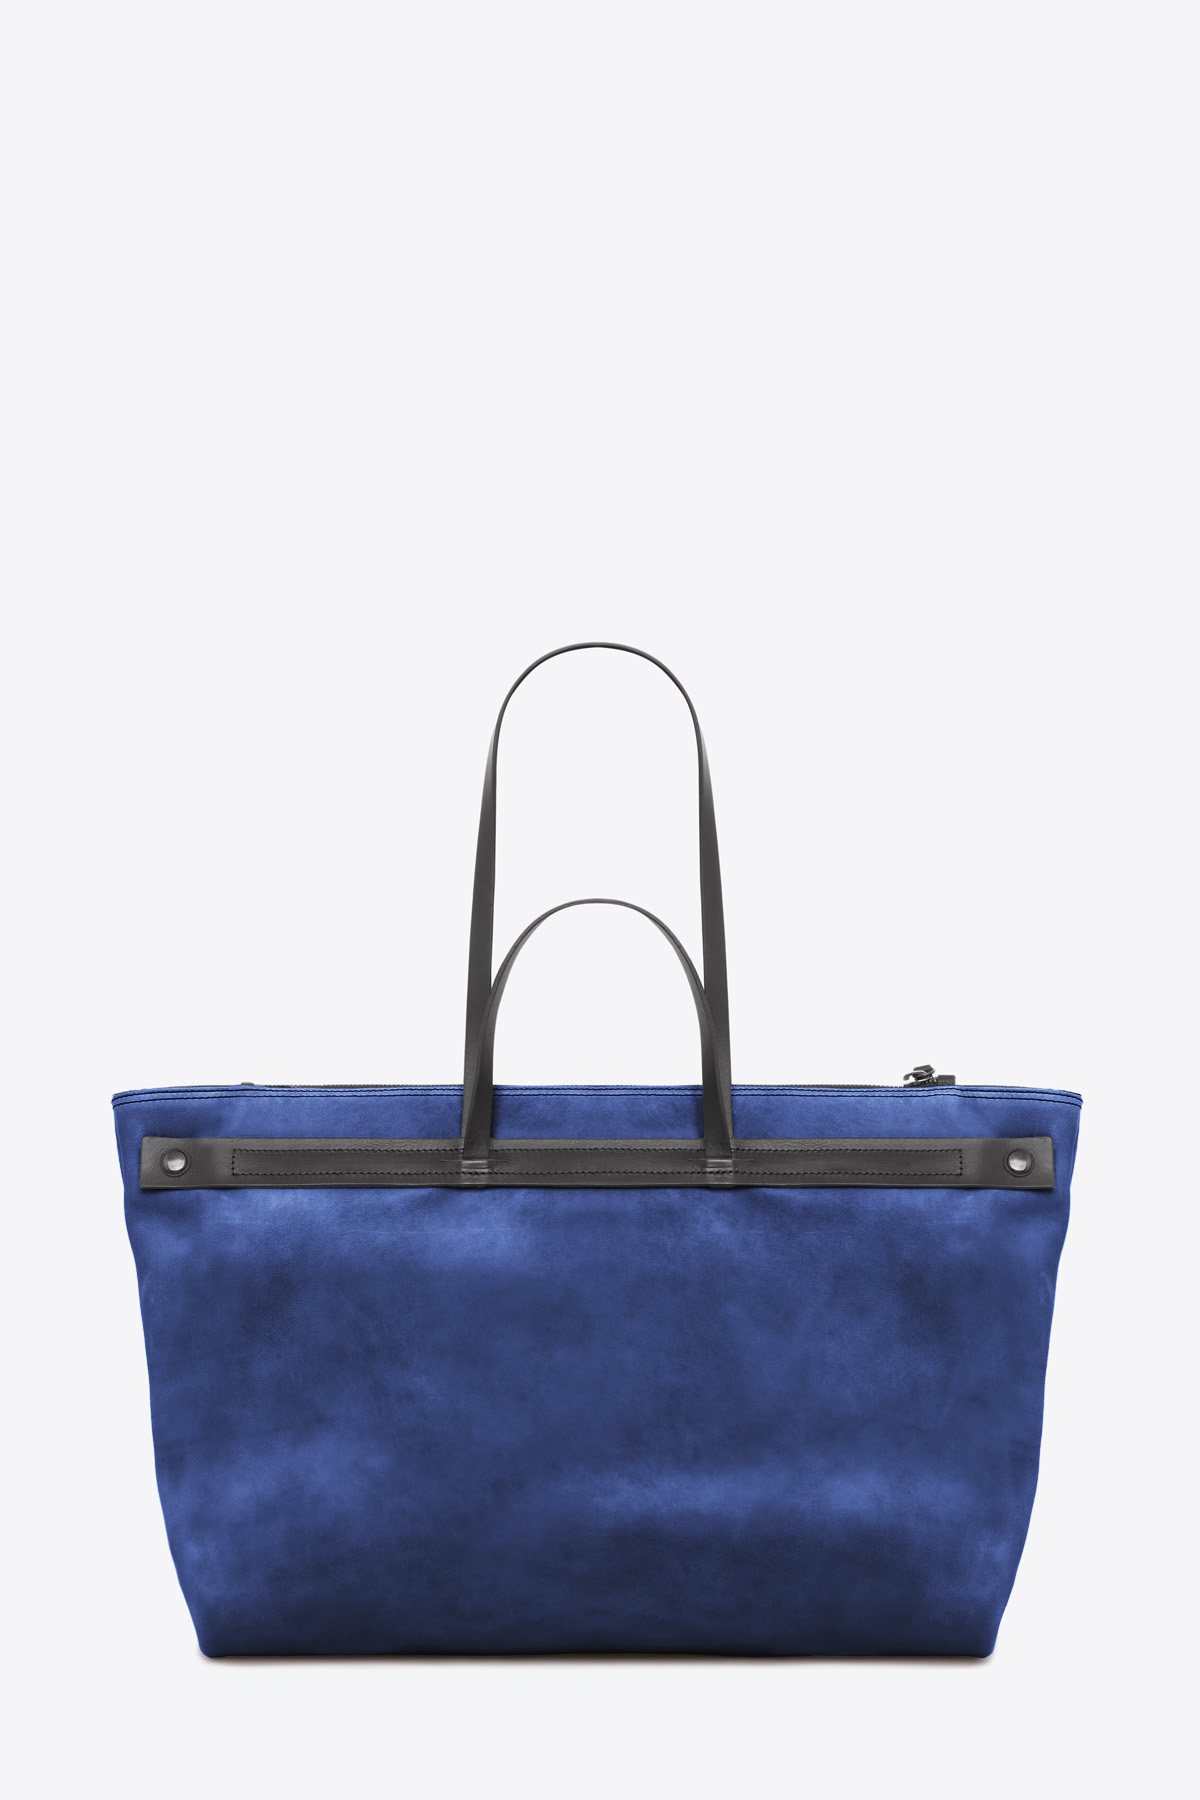 dclr007l-tote-a20-royalblue-back2